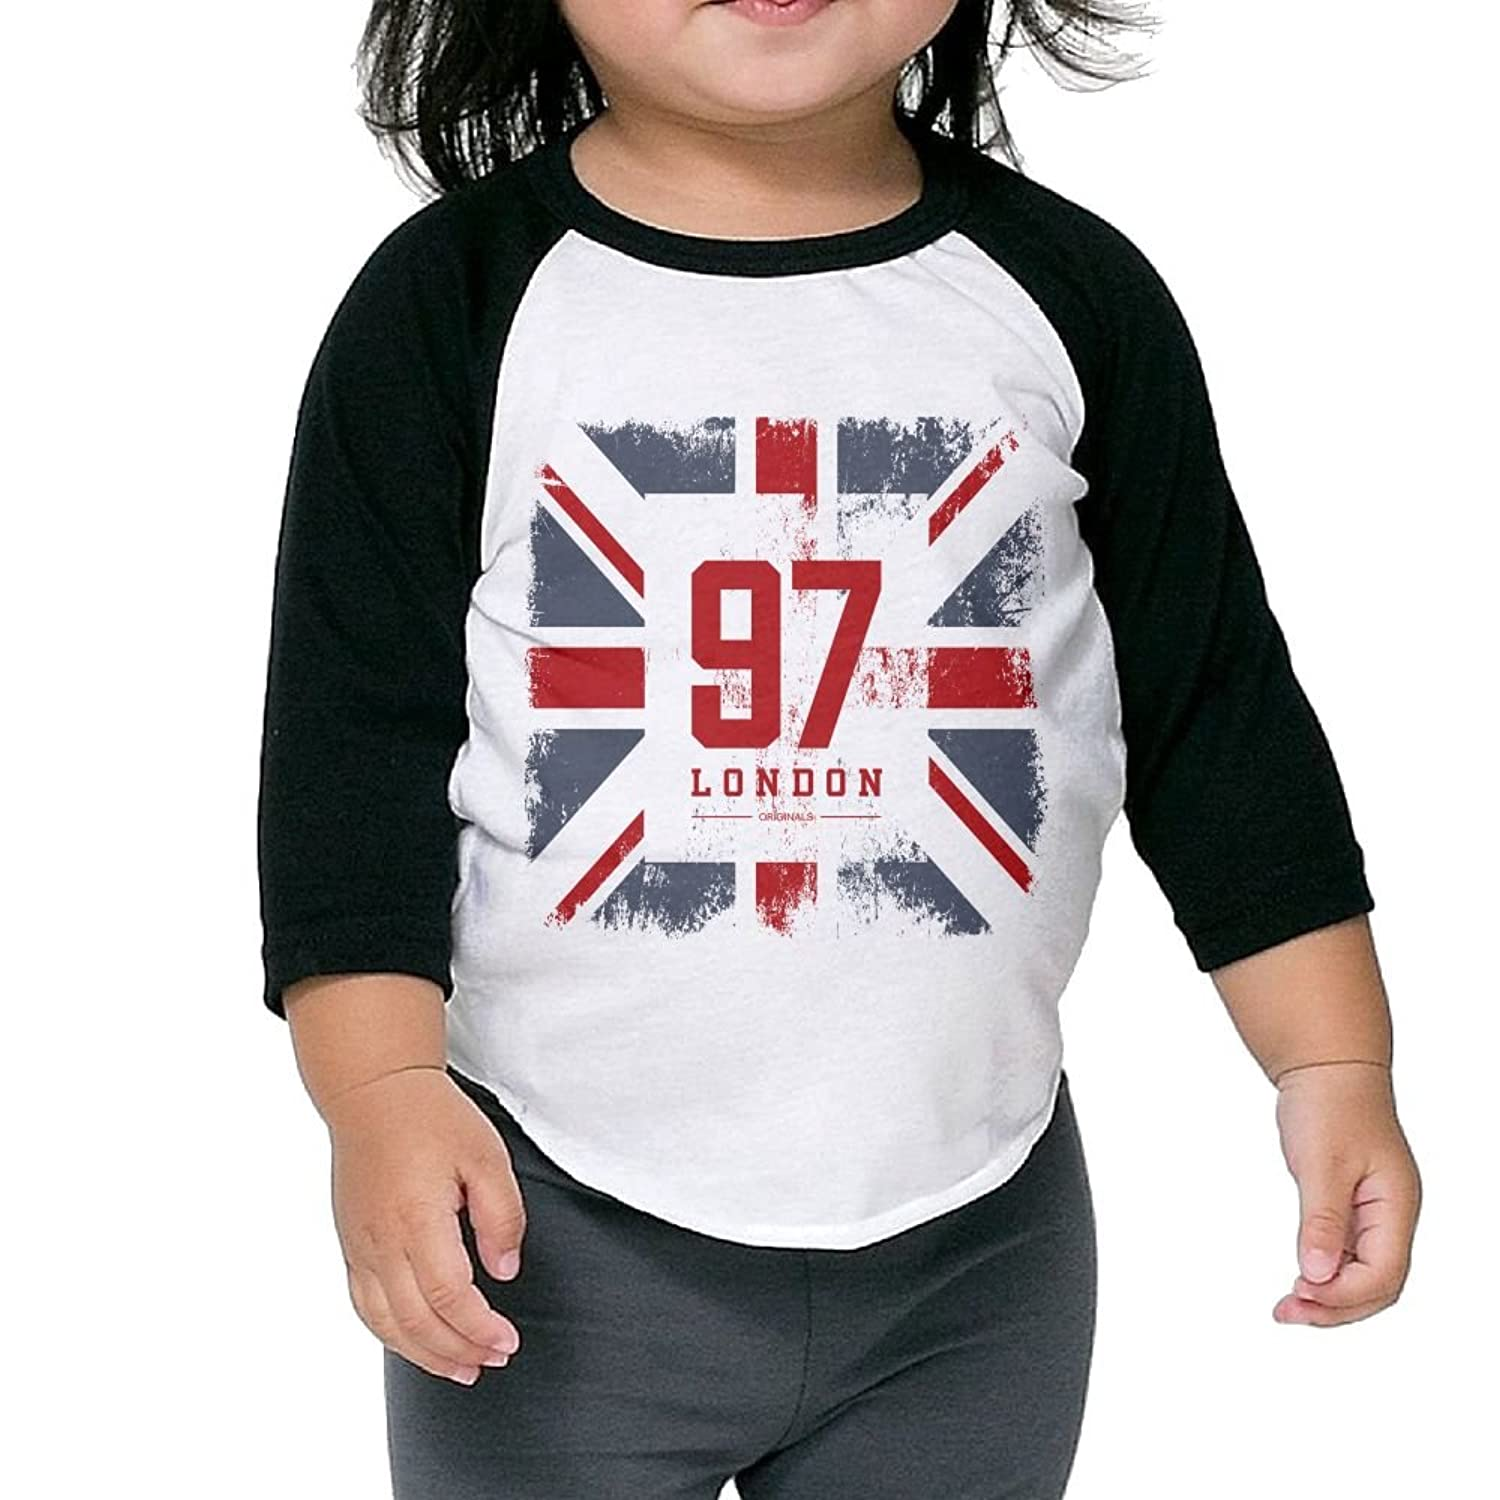 New CHENLY Unisex Kid's Sleeves Warm 97 London Cotton 3/4 Sleeves T-Shirt For children for cheap